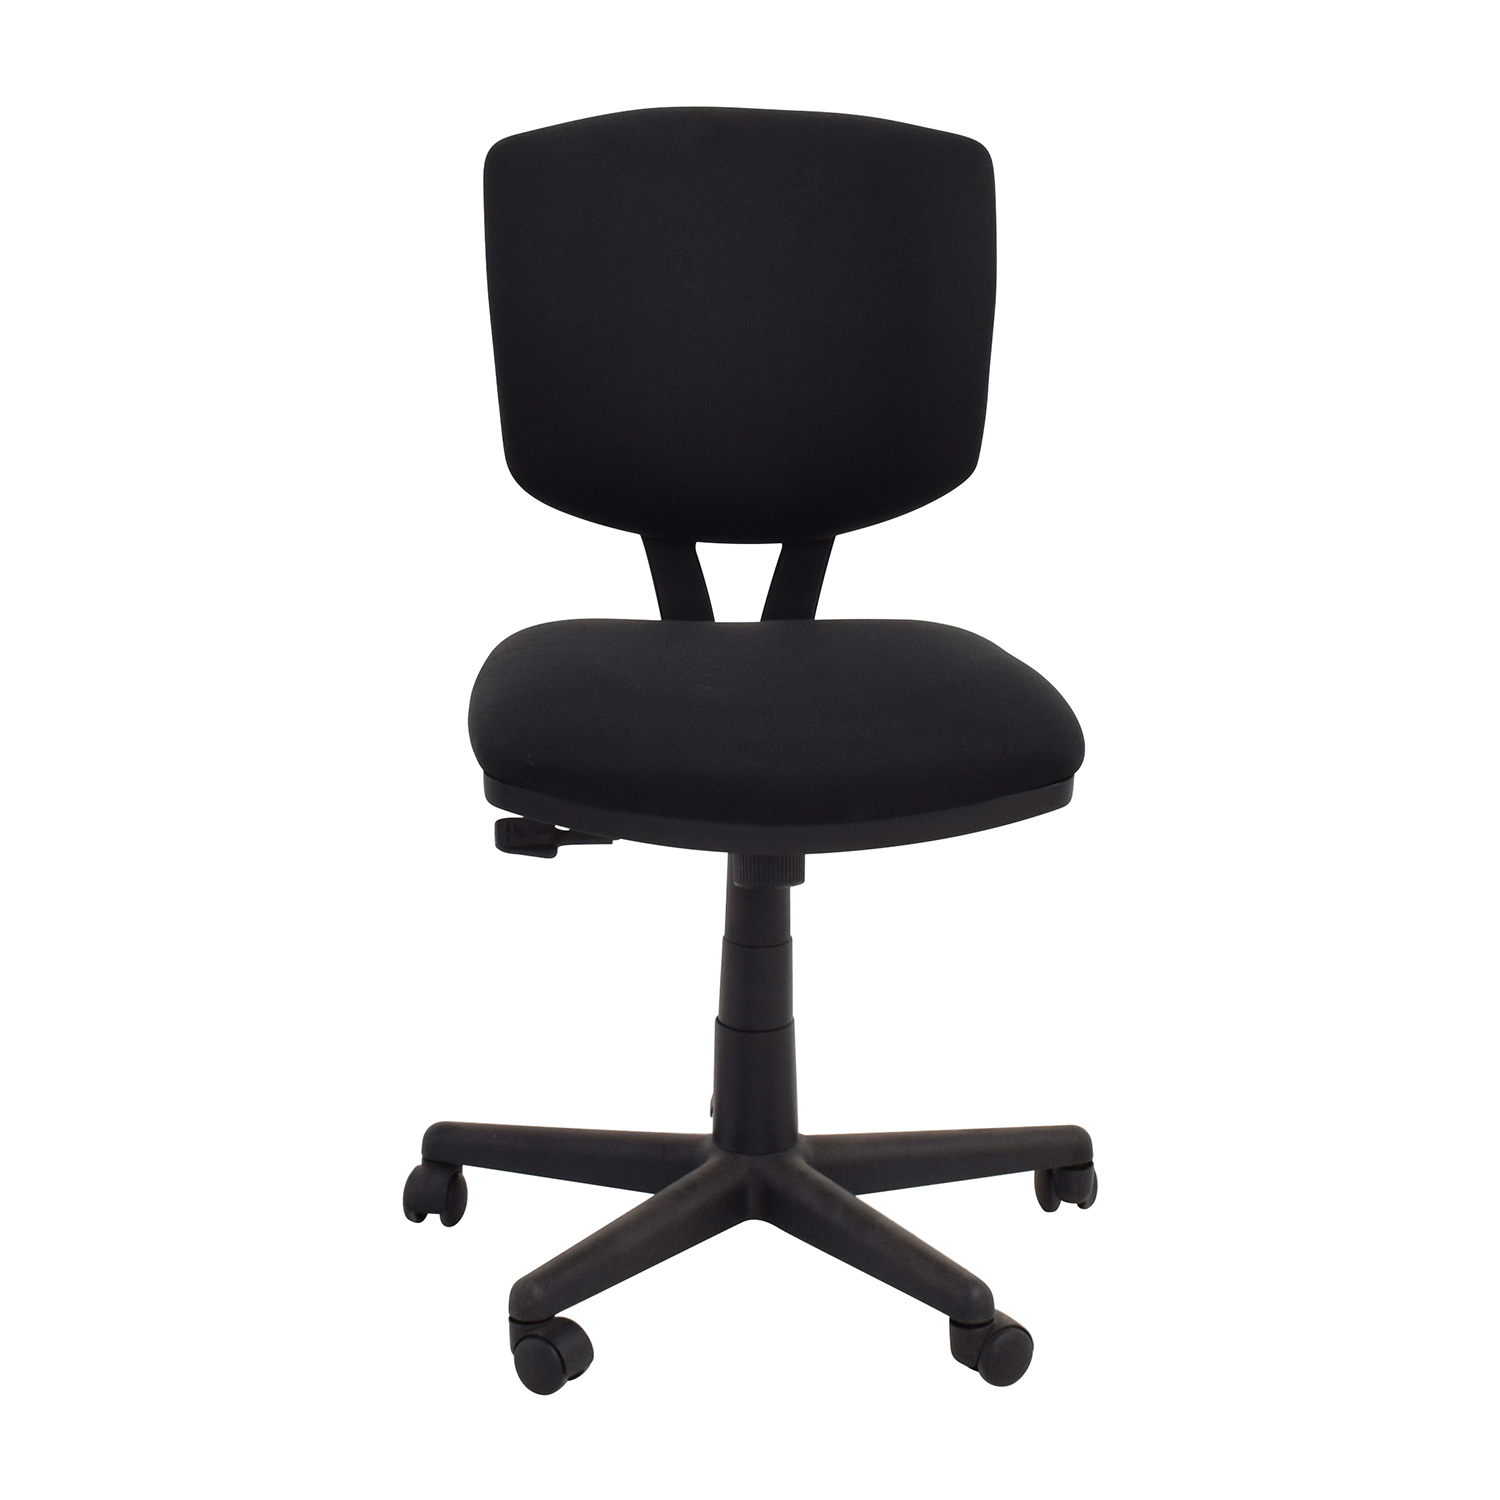 Black Adjustable Office Chair for sale